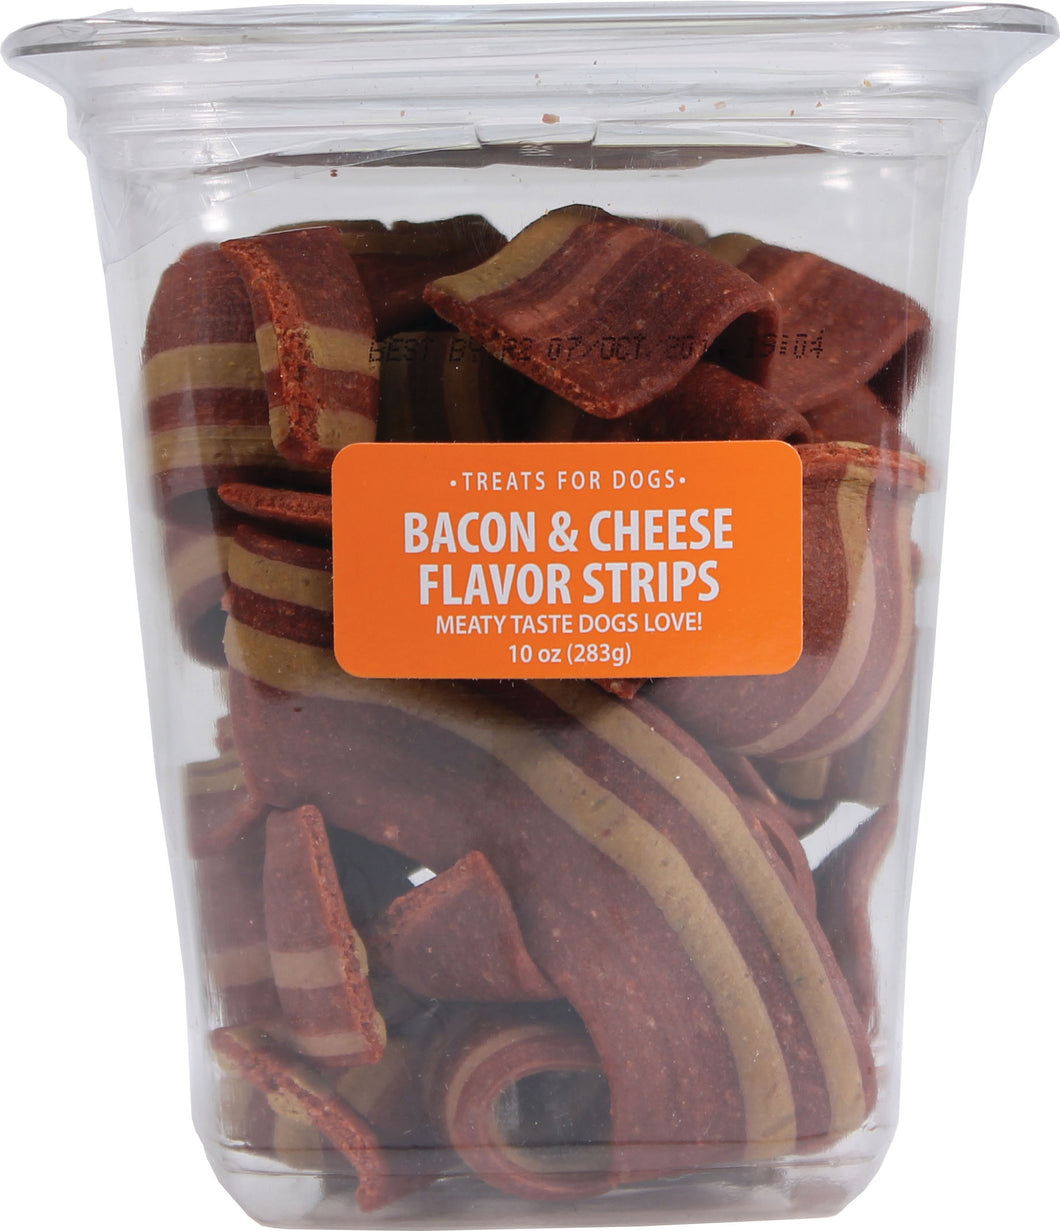 Bacon & Cheese Flavor Strips Dog Treats